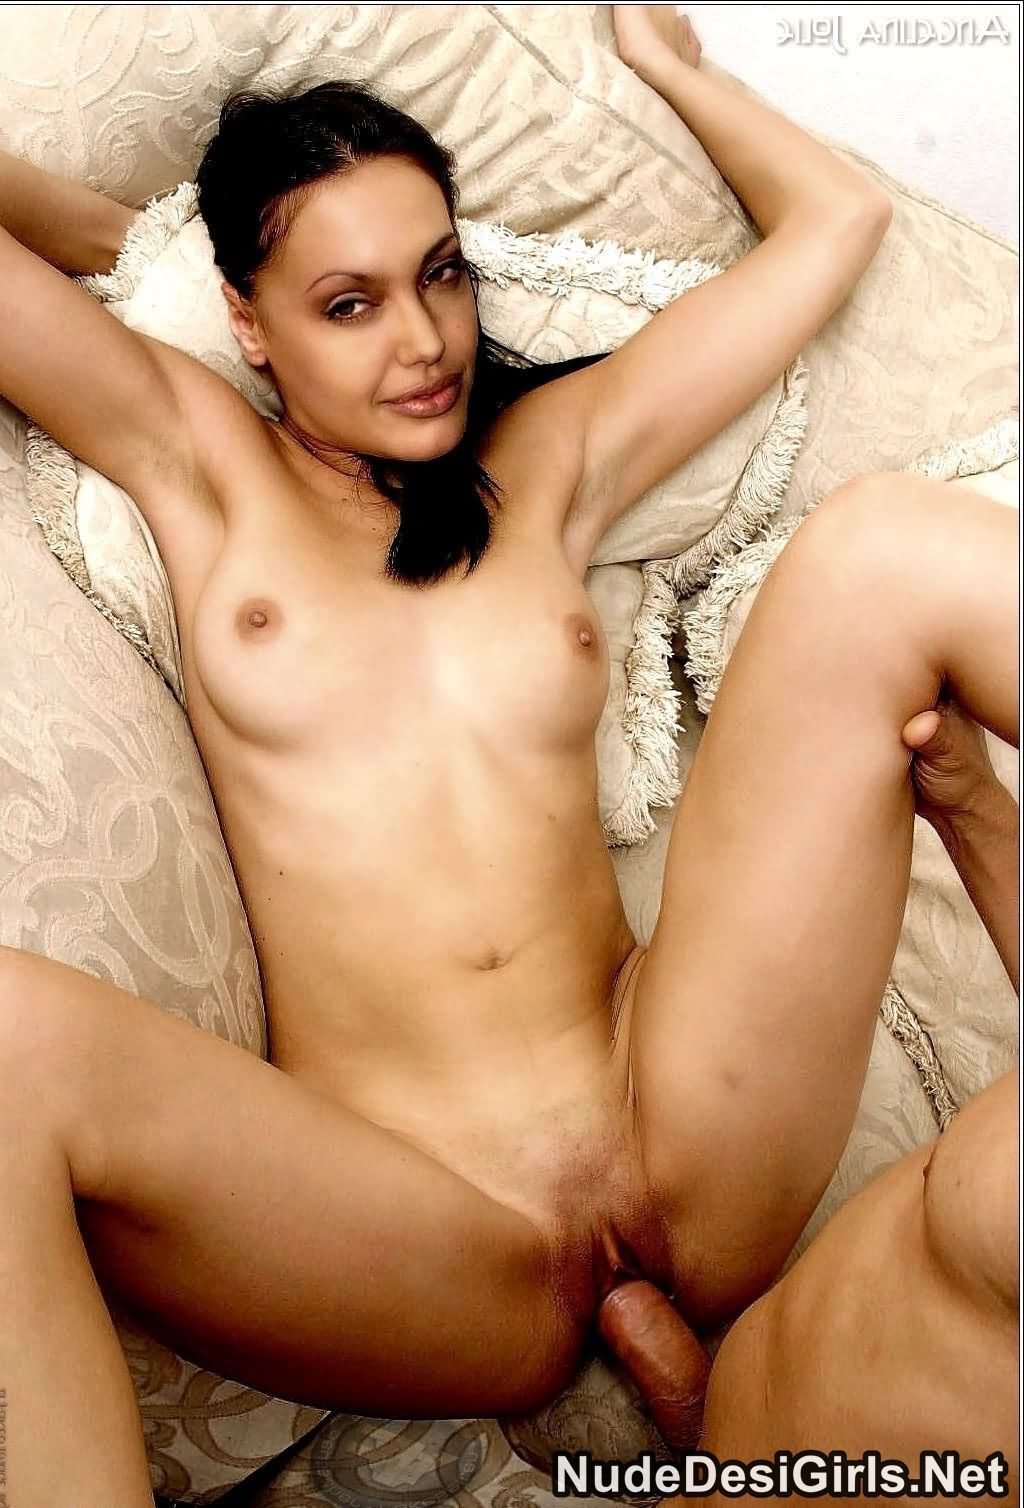 Angelin jolie xxx photo think, that